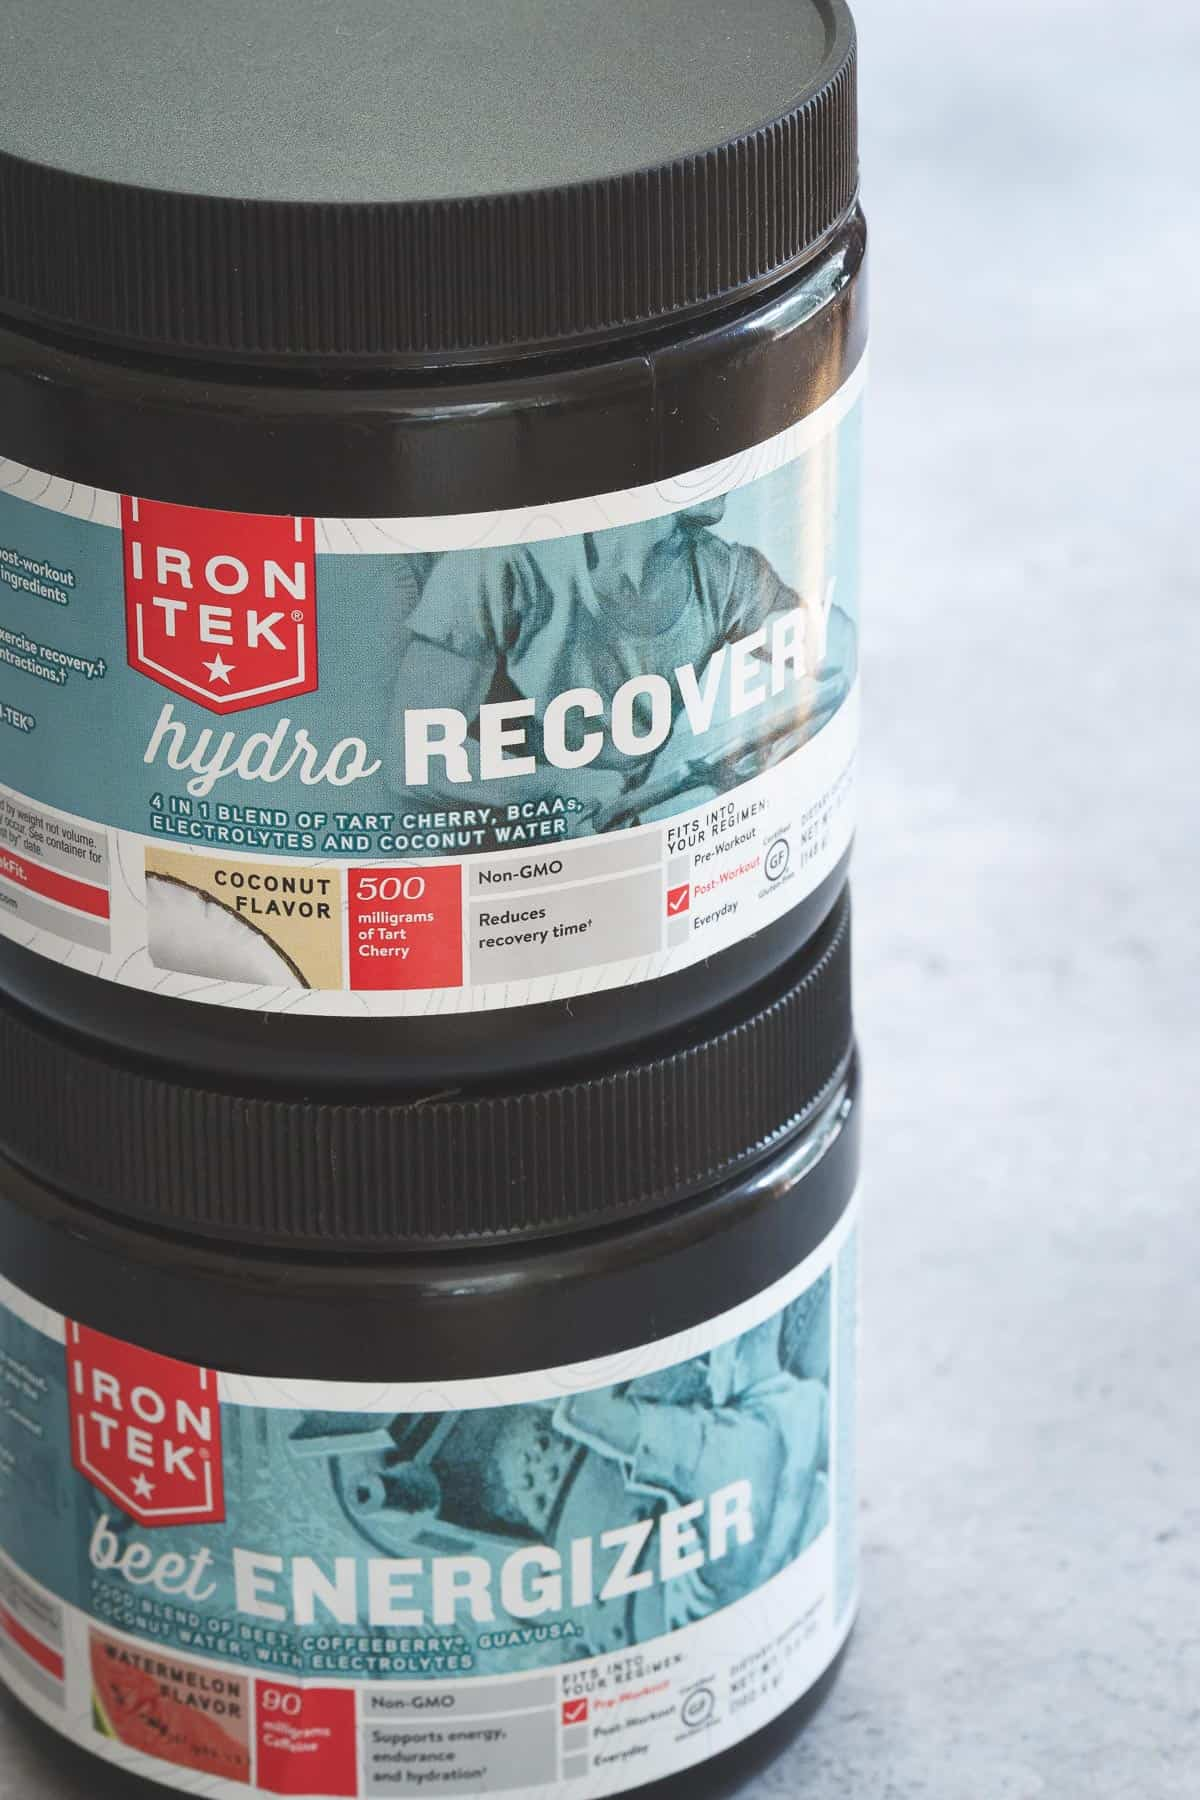 IronTek energizer and recovery options are great natural pre and post workout supplements to add into your routine.